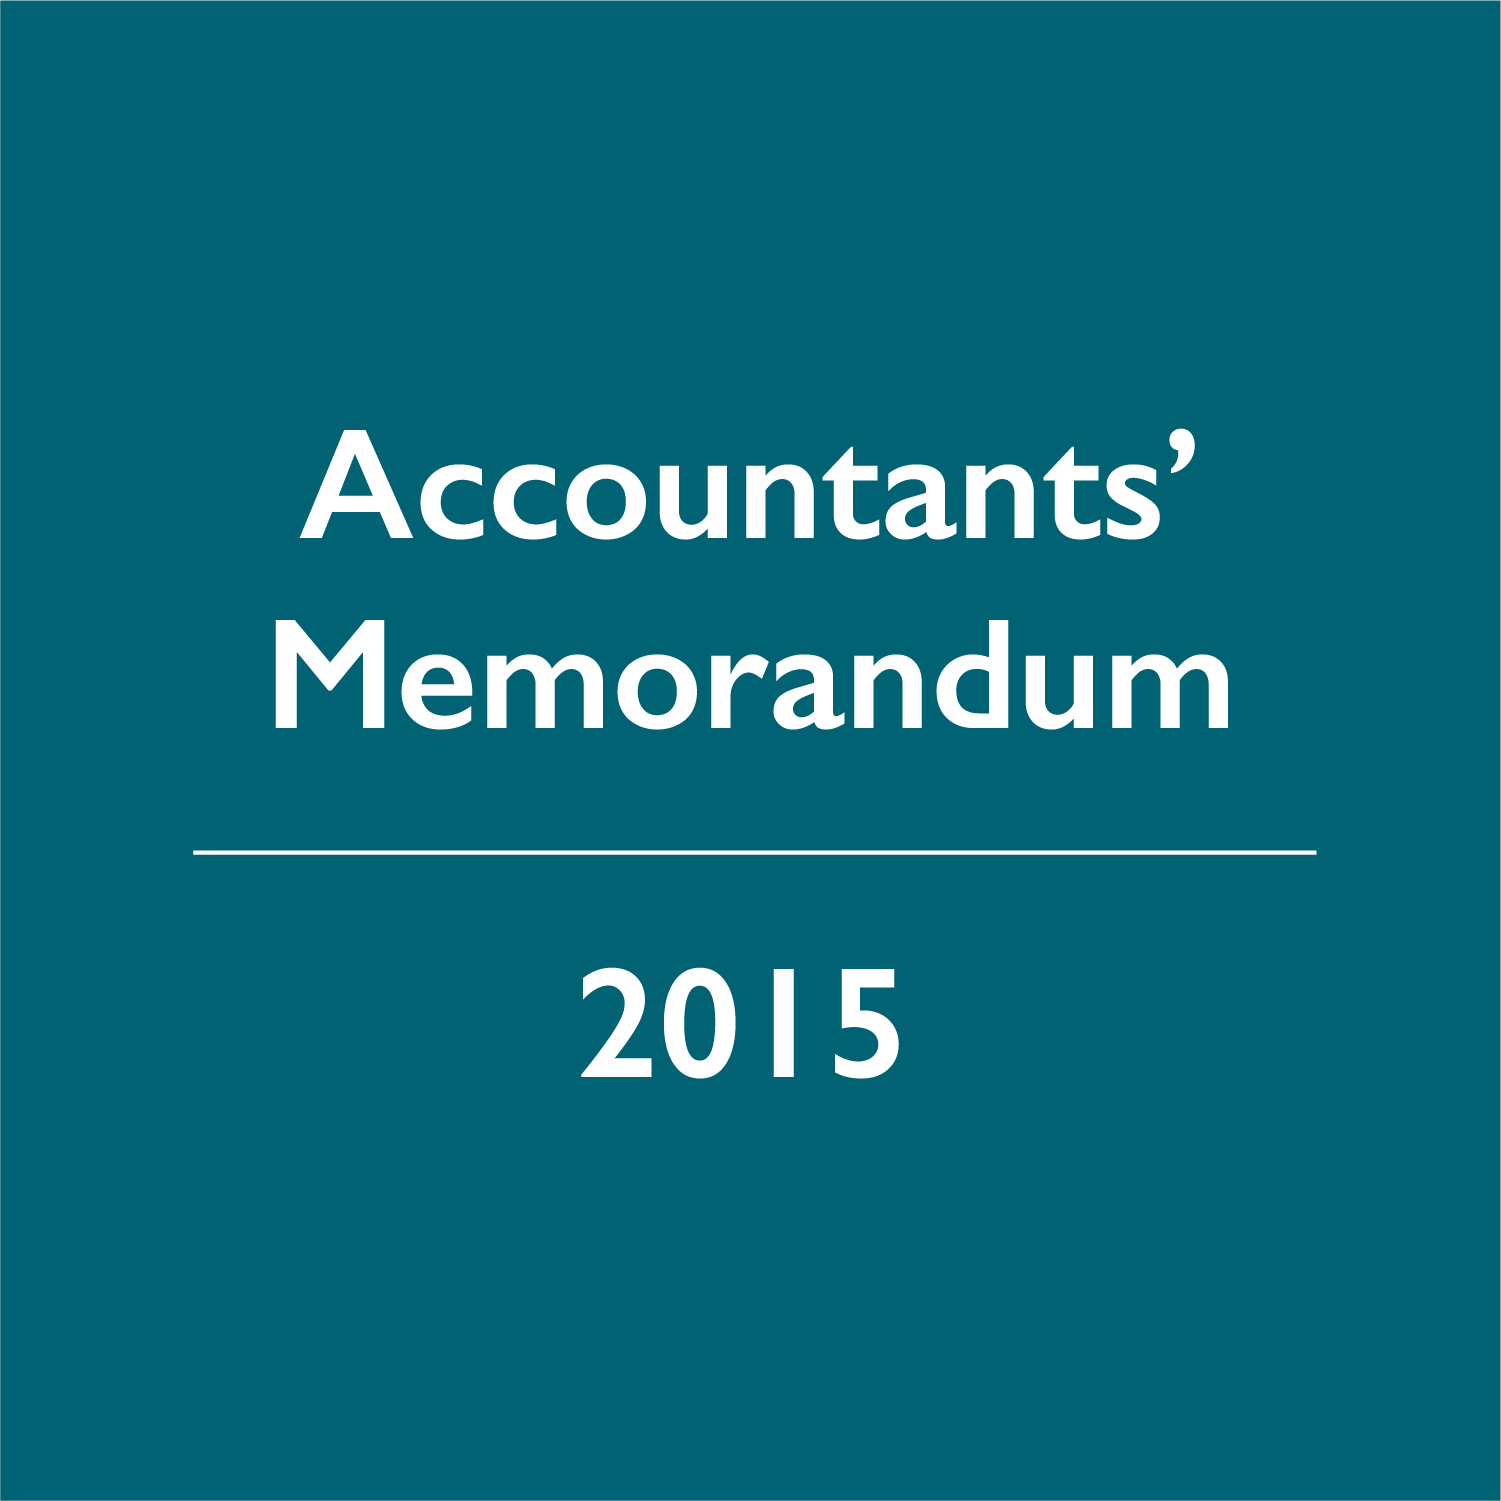 2015 Accountants' Memorandum